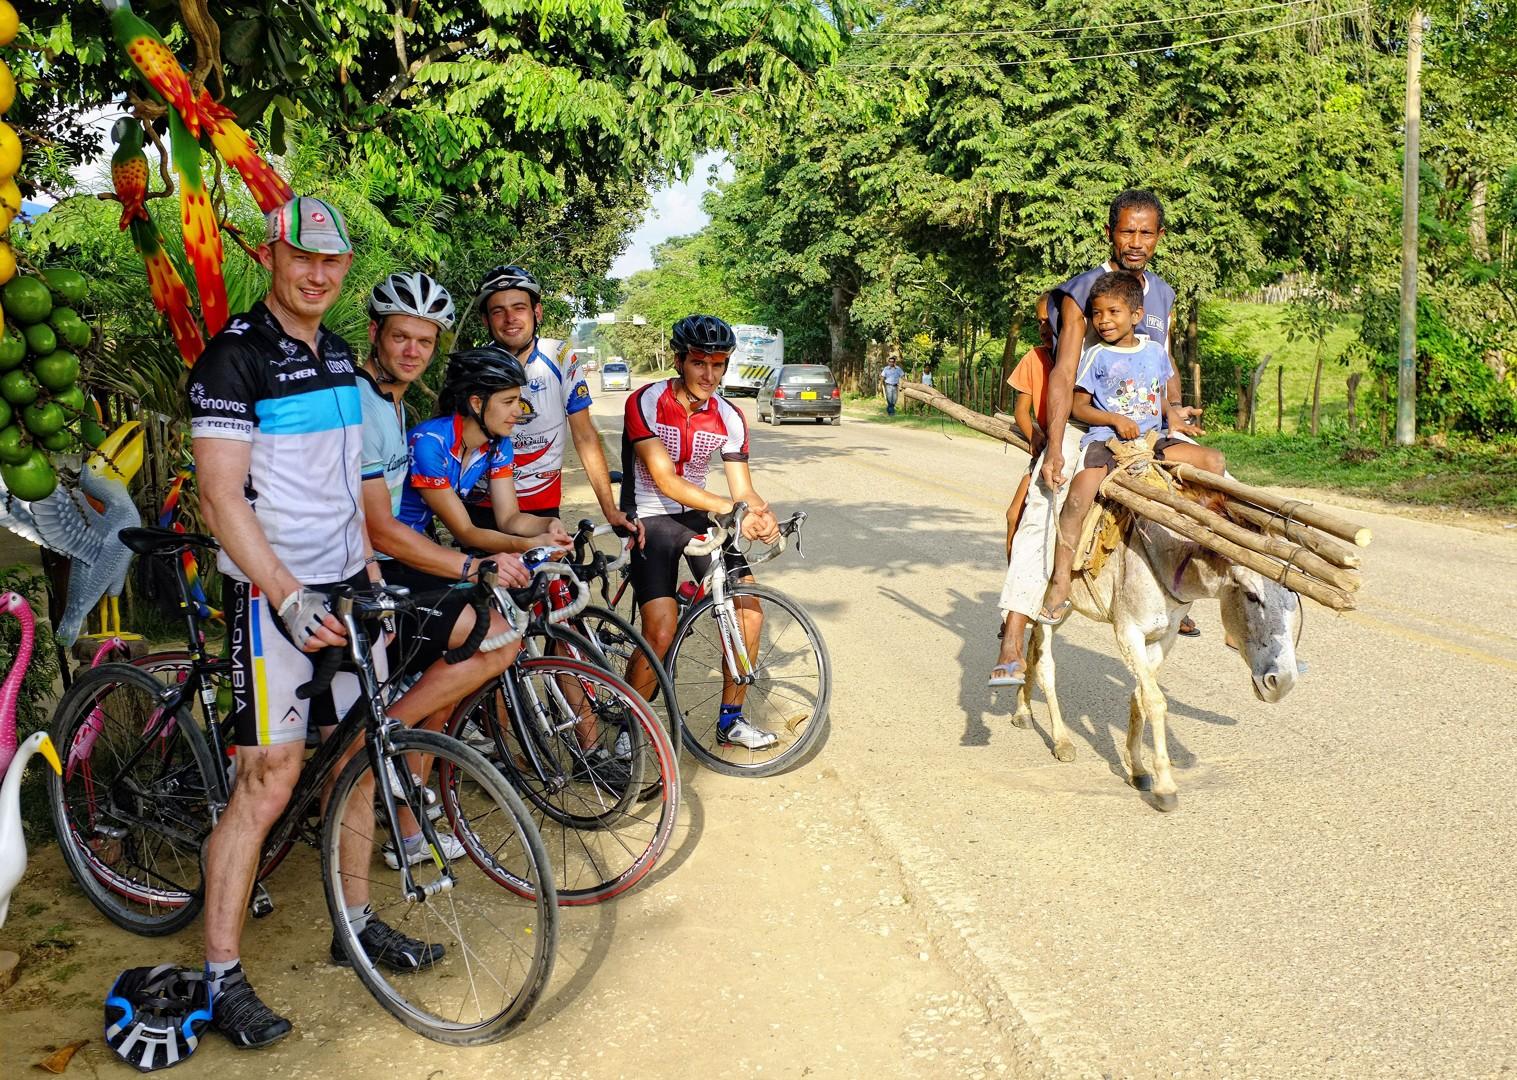 saddle-skedaddle-guided-road-cycling-holiday-emerald-mountains-colombia.jpg - Colombia - Tres Cordilleras - Guided Road Cycling Holiday - Road Cycling